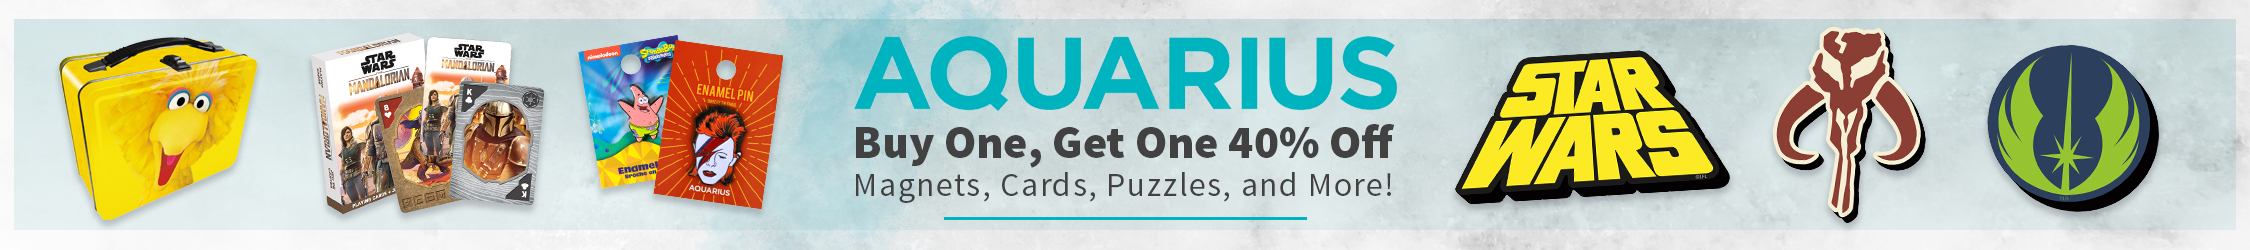 Aquarius Buy One Get One 40% Off